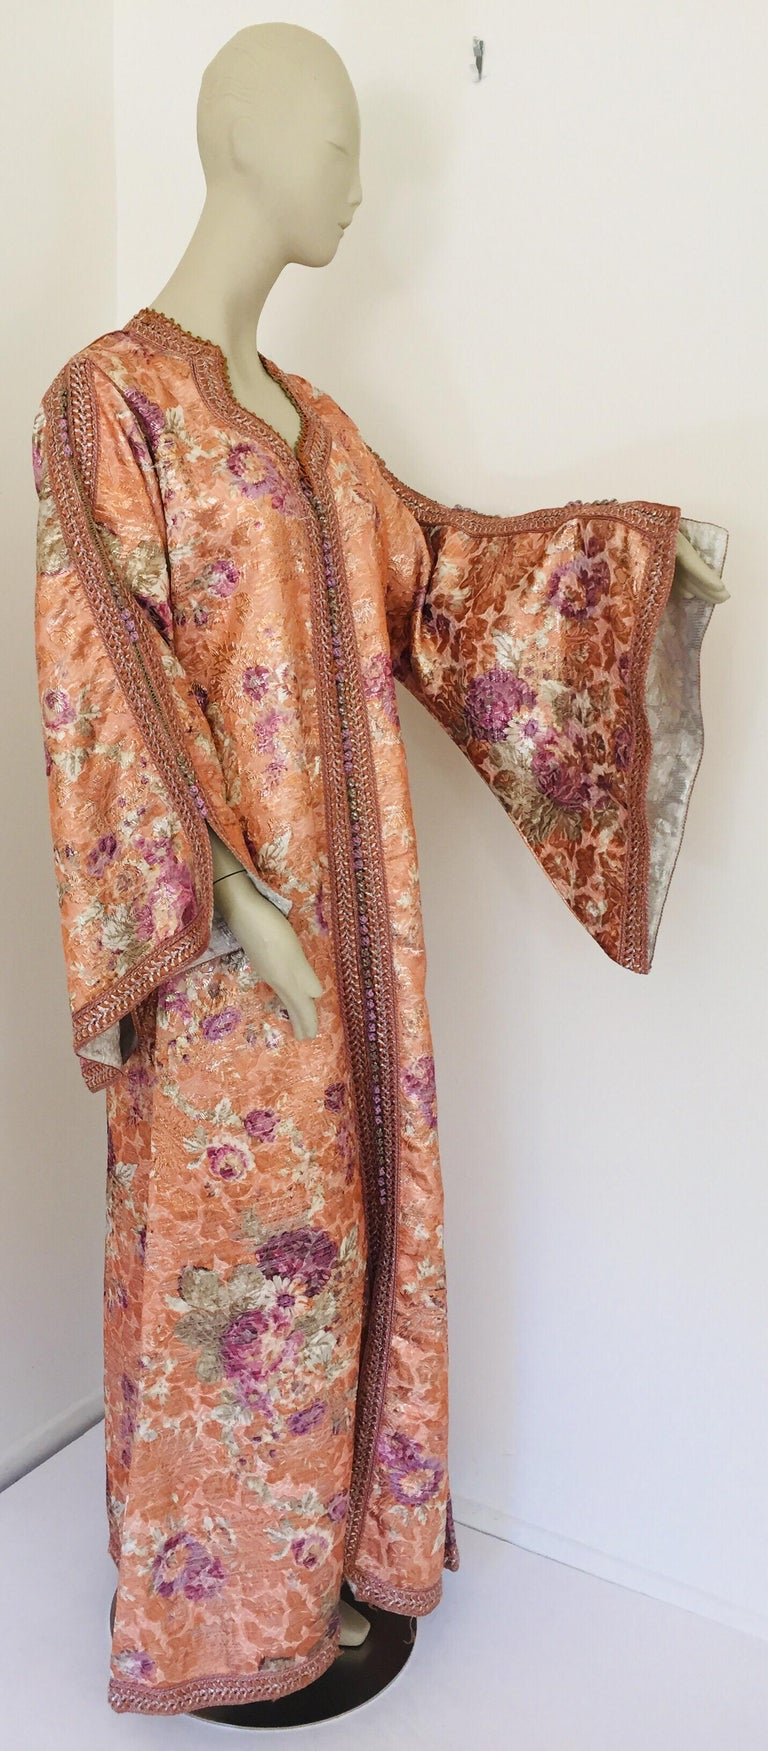 Elegant vintage designer Moroccan kaftan, purple and burnt orange floral brocade embroidered with gold. This chic Gypsy Bohemian maxi dress kaftan is embroidered and embellished with gold and orange metallic thread. with hand done embroidery work